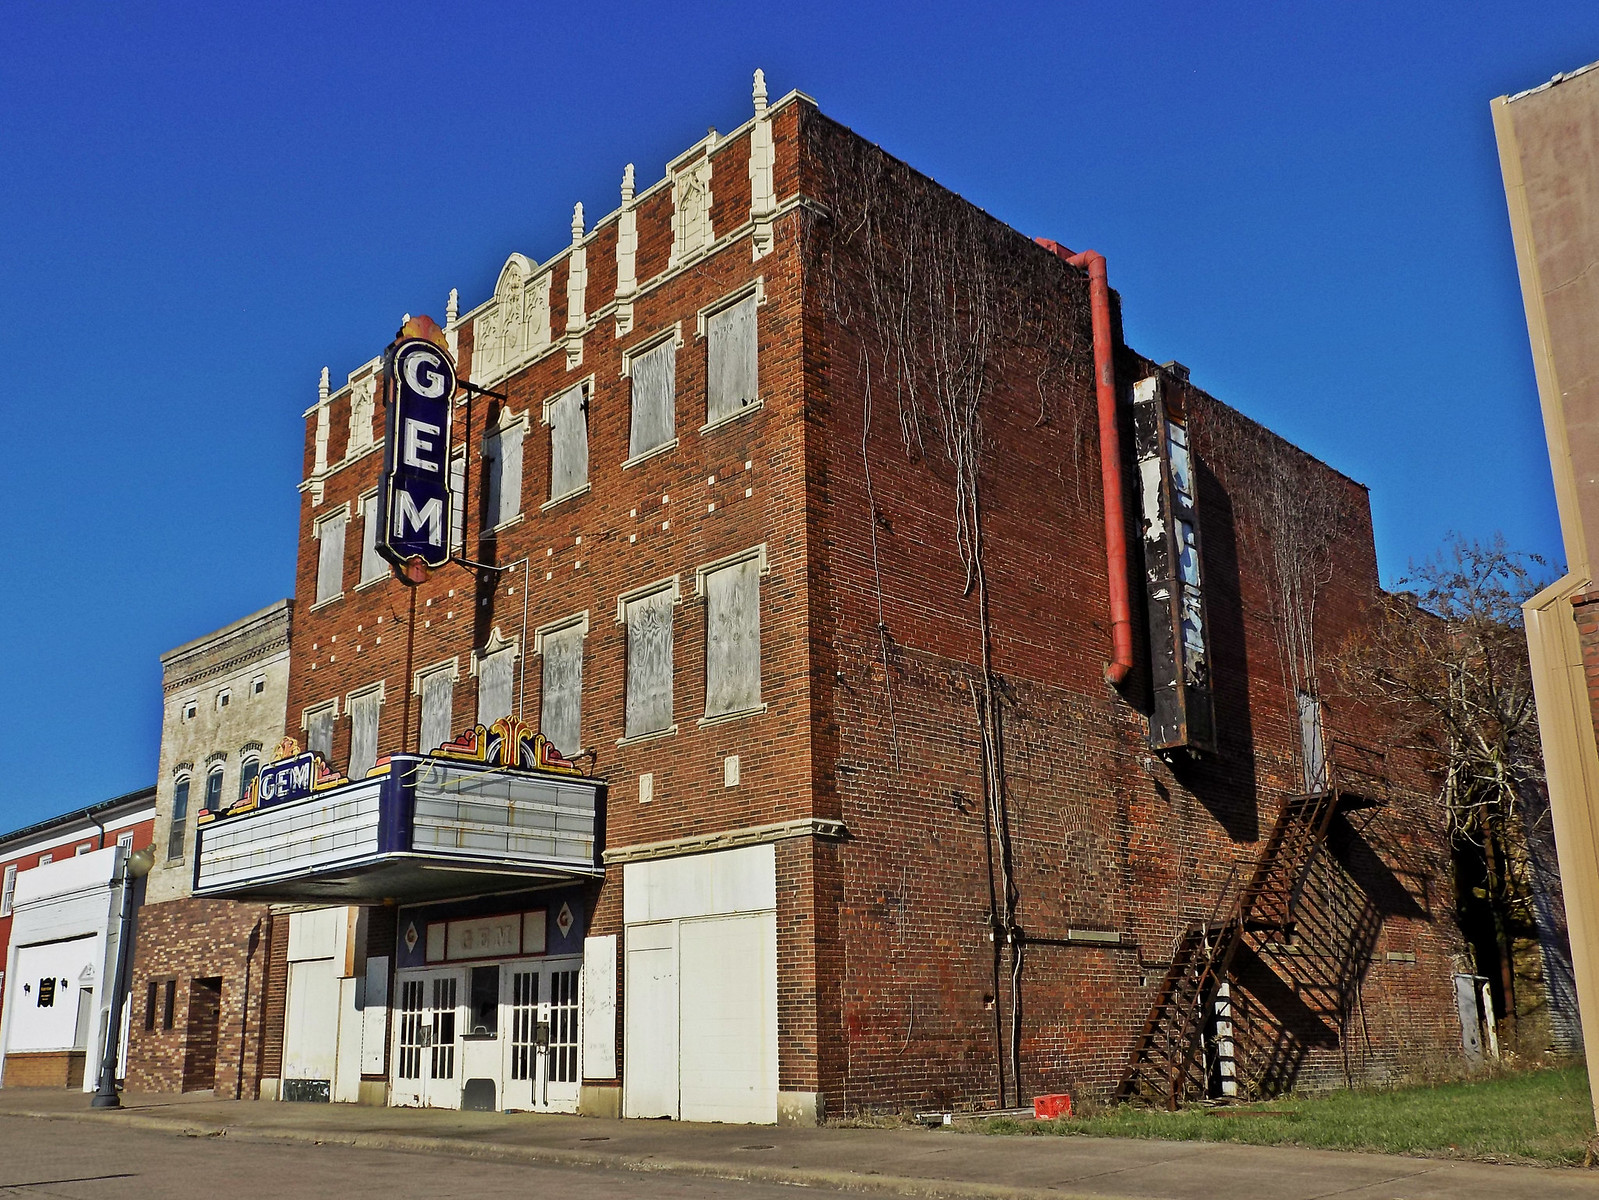 Cairo, Illinois (March 2017)